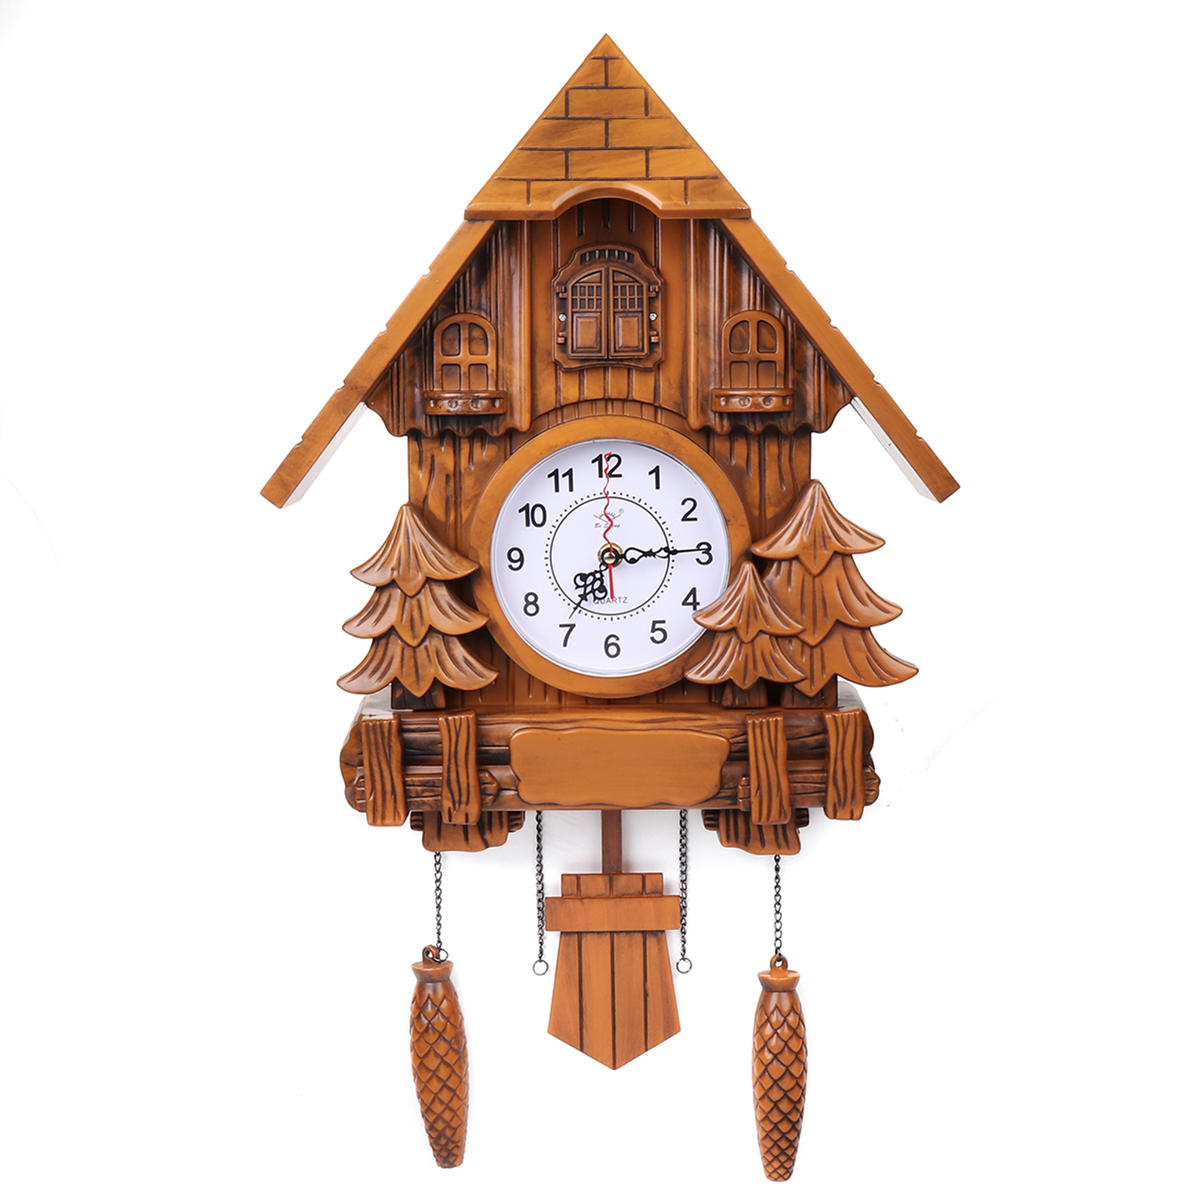 Clock Over Fireplace Beautiful Vintage Black Cuckoo Wall Clock forest Swing Wood Handmade Kitchen Home Decor